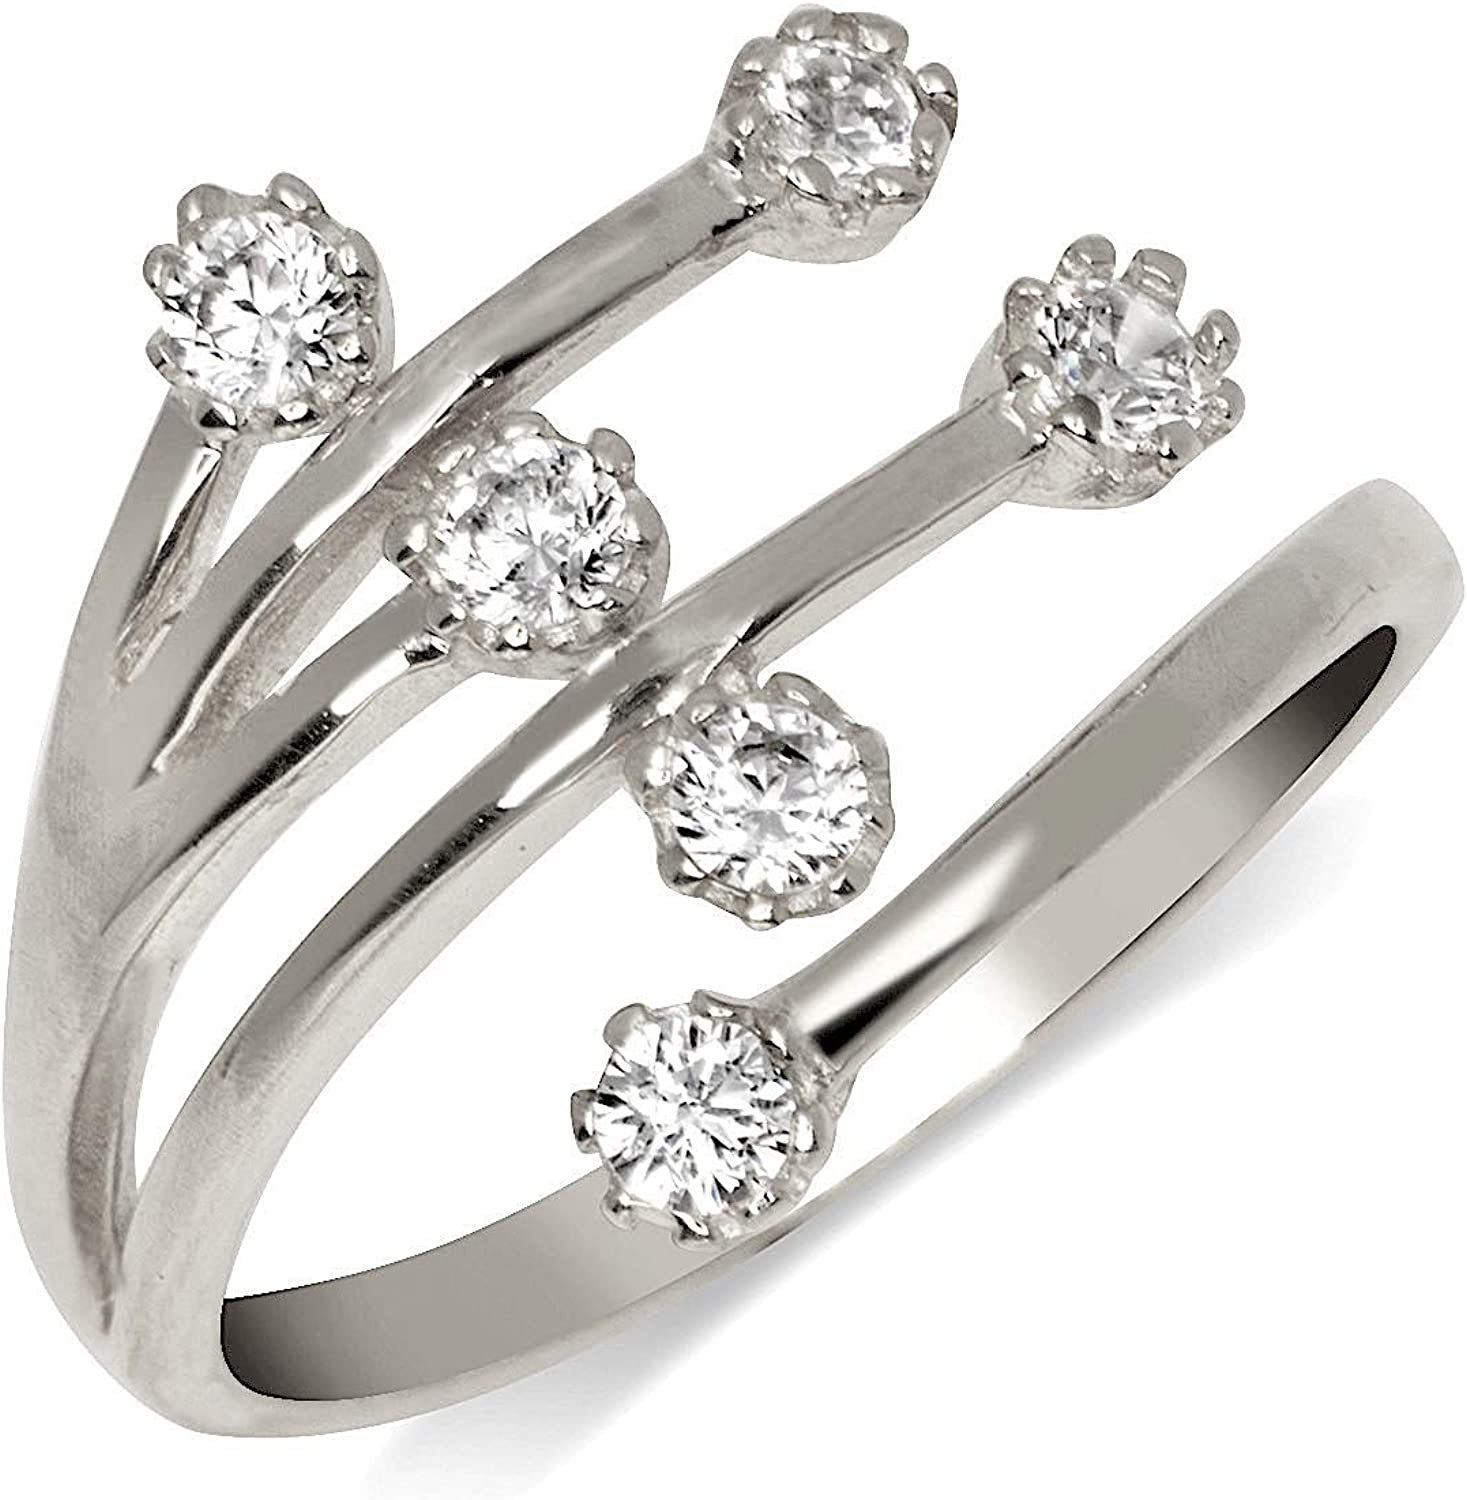 10KT Solid White Gold Toe Ring Flower CZ Cubic Zirconia Jewelry Adjustable